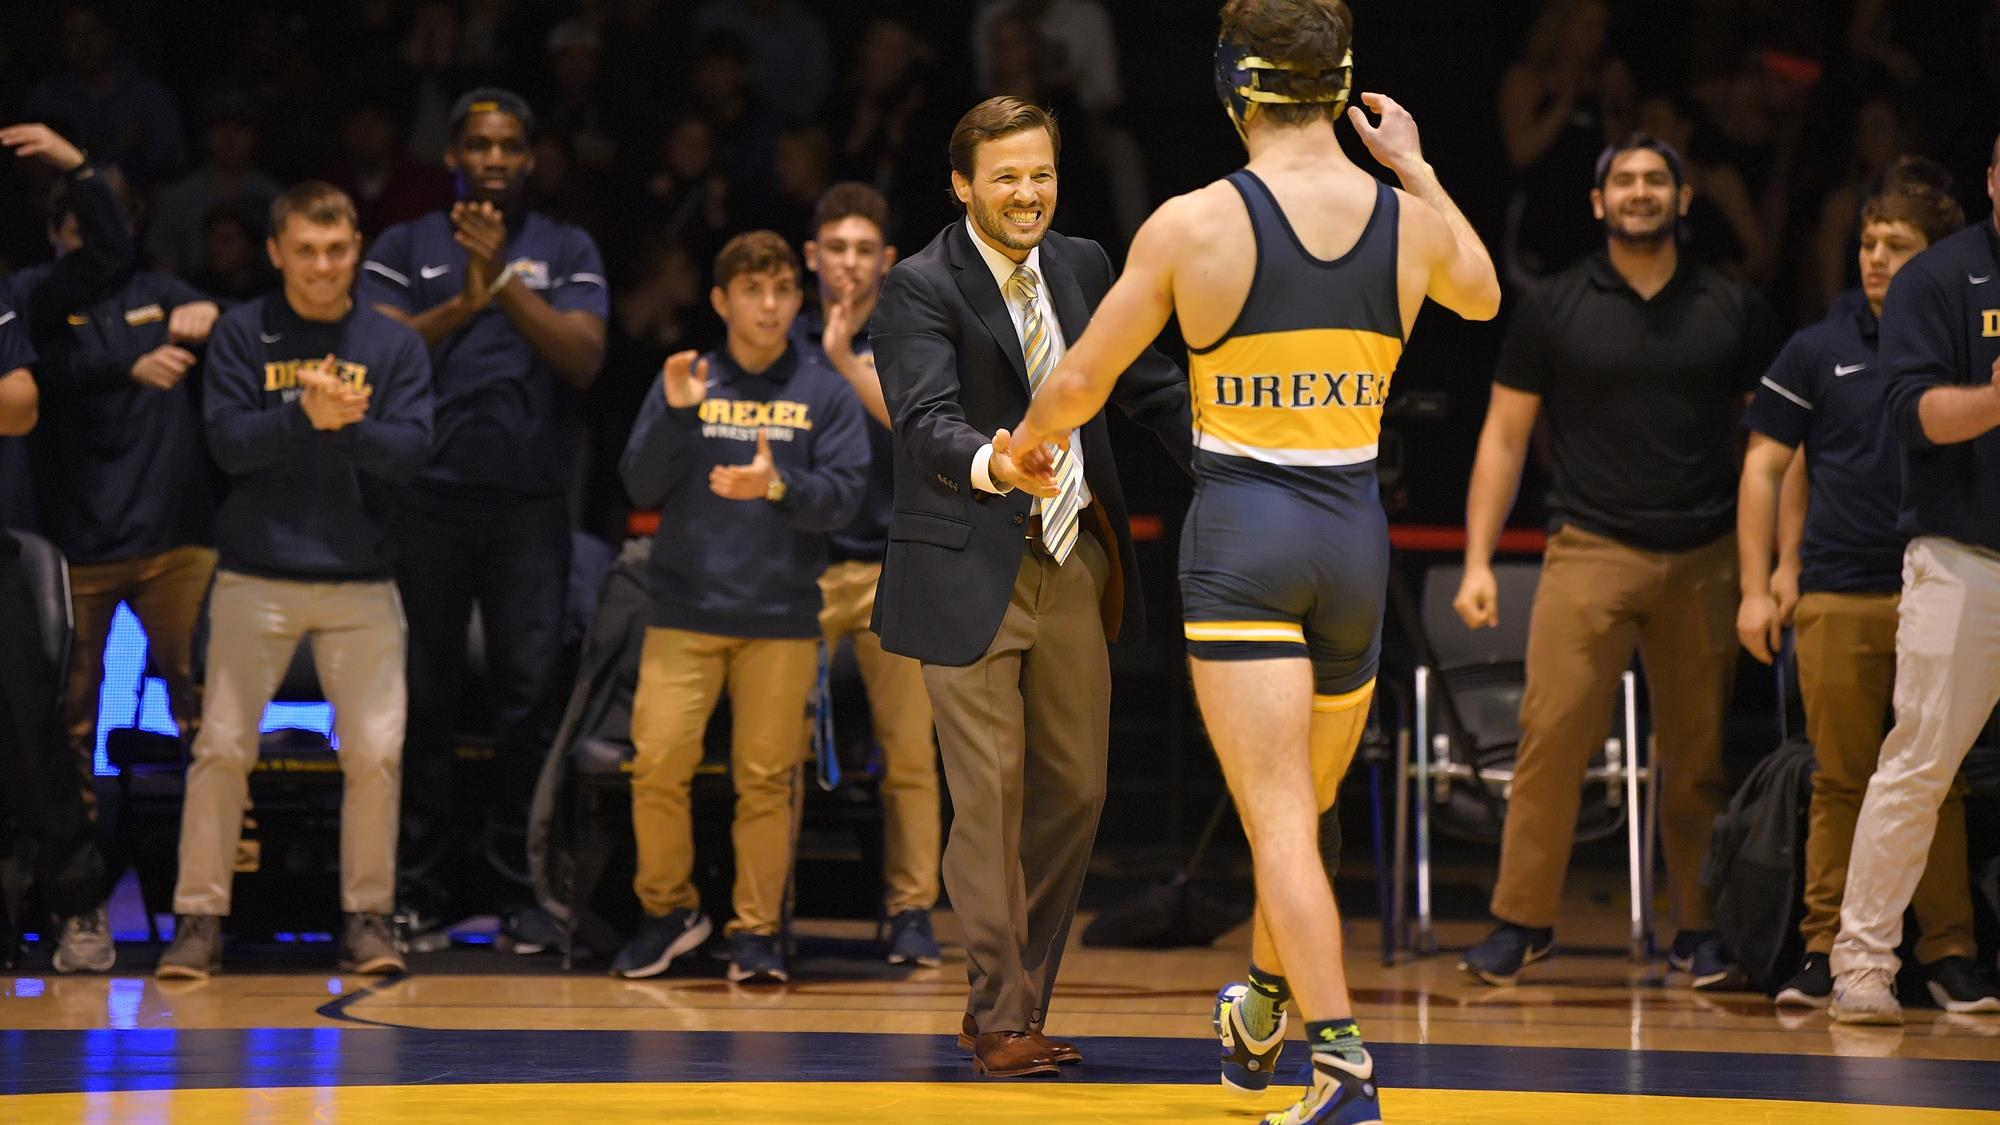 Wrestling Drexel University Athletics